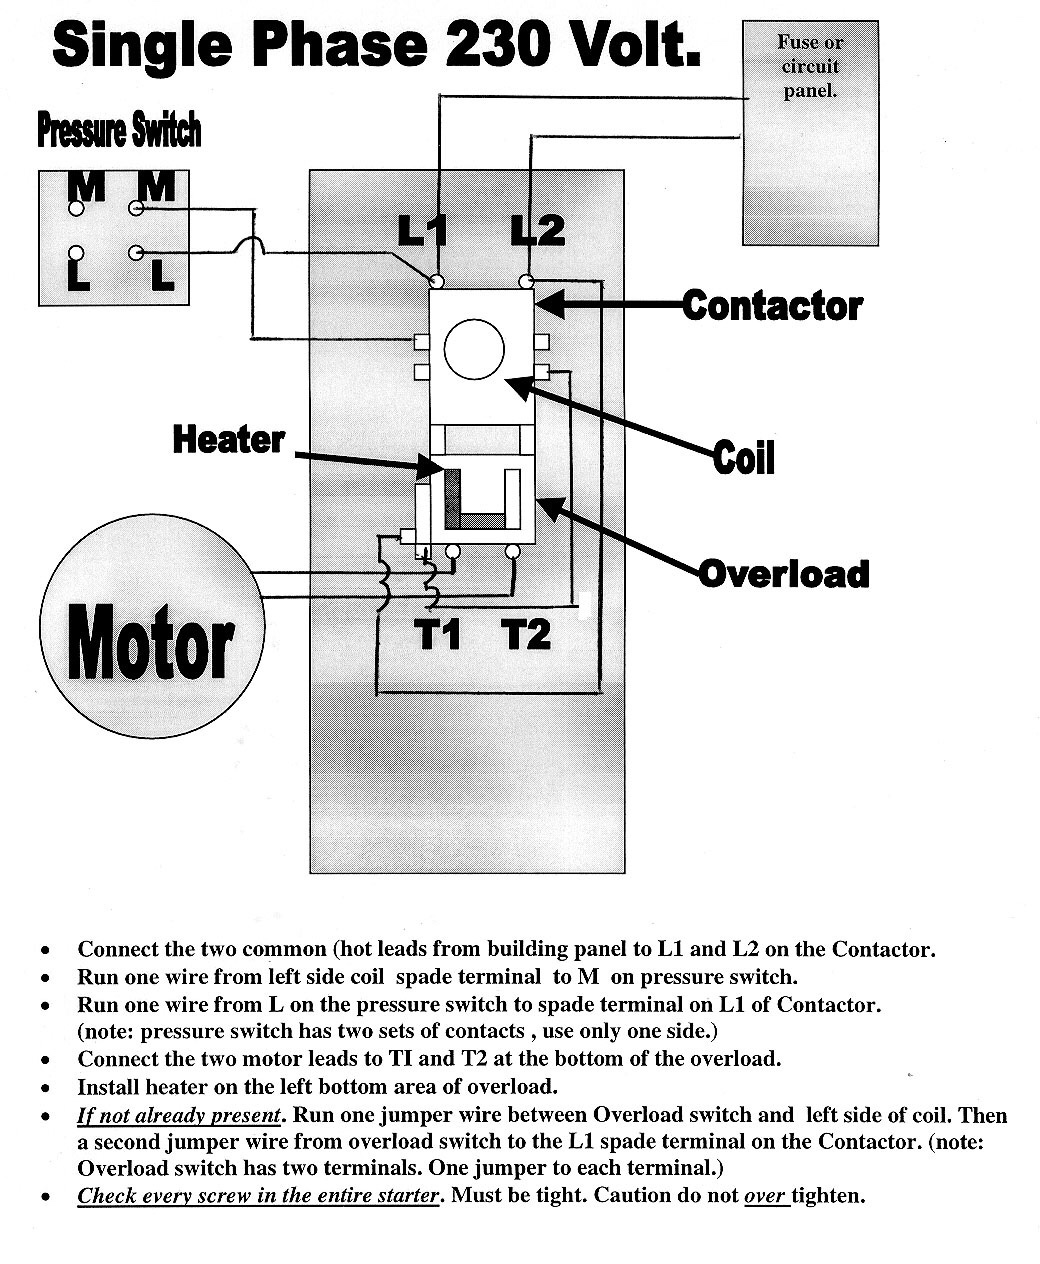 3ba939427a6e7206e9573f95da040012?resize=665%2C808 im trying to wire a dayton 2x440a drum switch foward and reverse 220 volt switch wiring diagram at love-stories.co